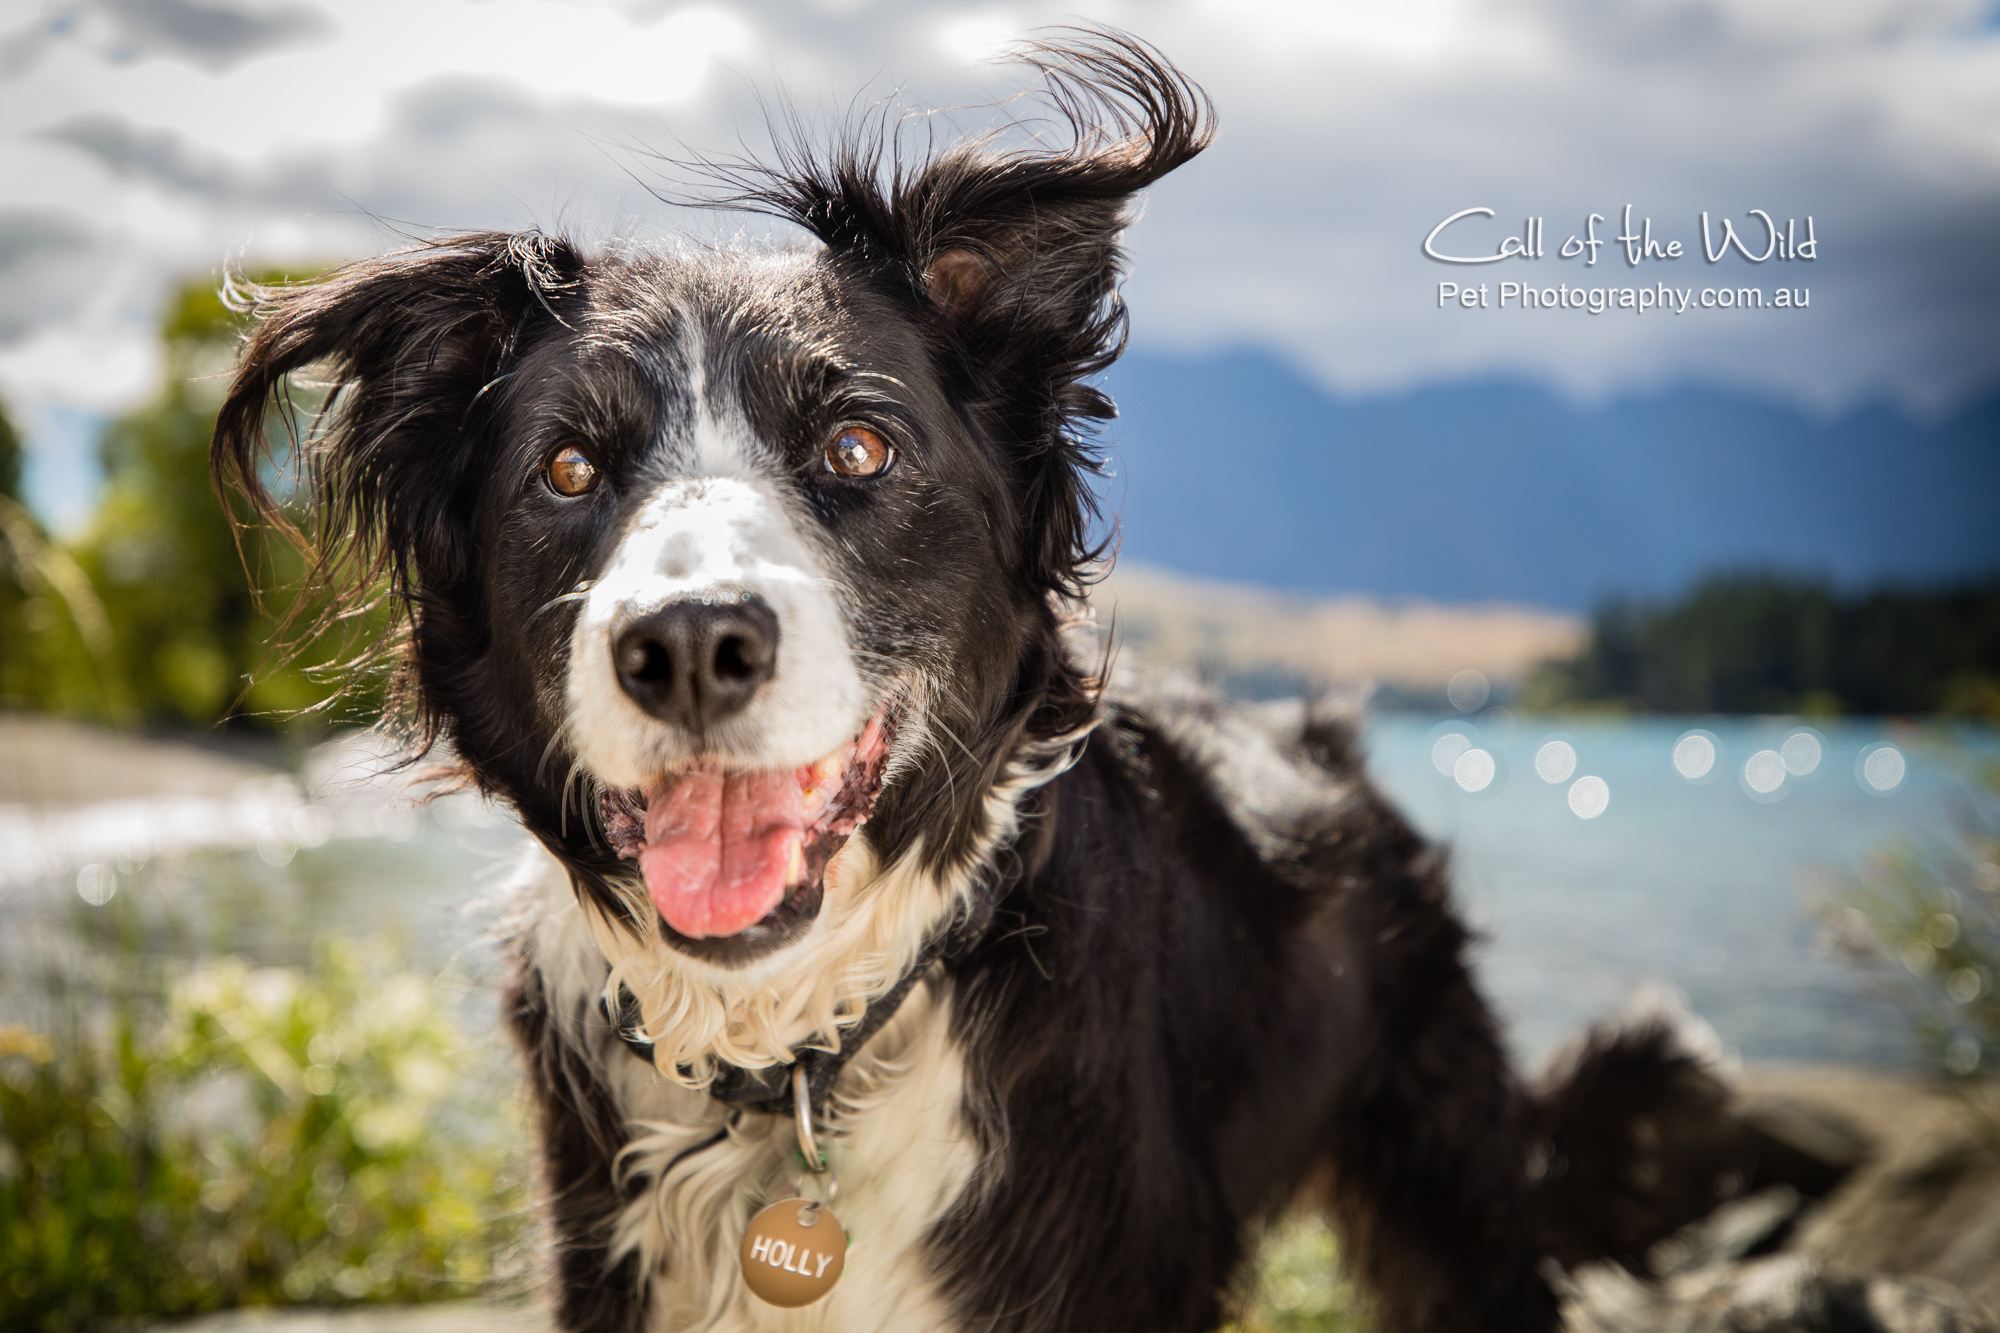 Holly the Border Collie from NZ - ★★★★★ 3 months agoA dedicated professional, in what is a very demanding photography application, that requires that the model mentally understands what is required, without any real comprehension of what is happening. Annabel took great care and time to ensure the